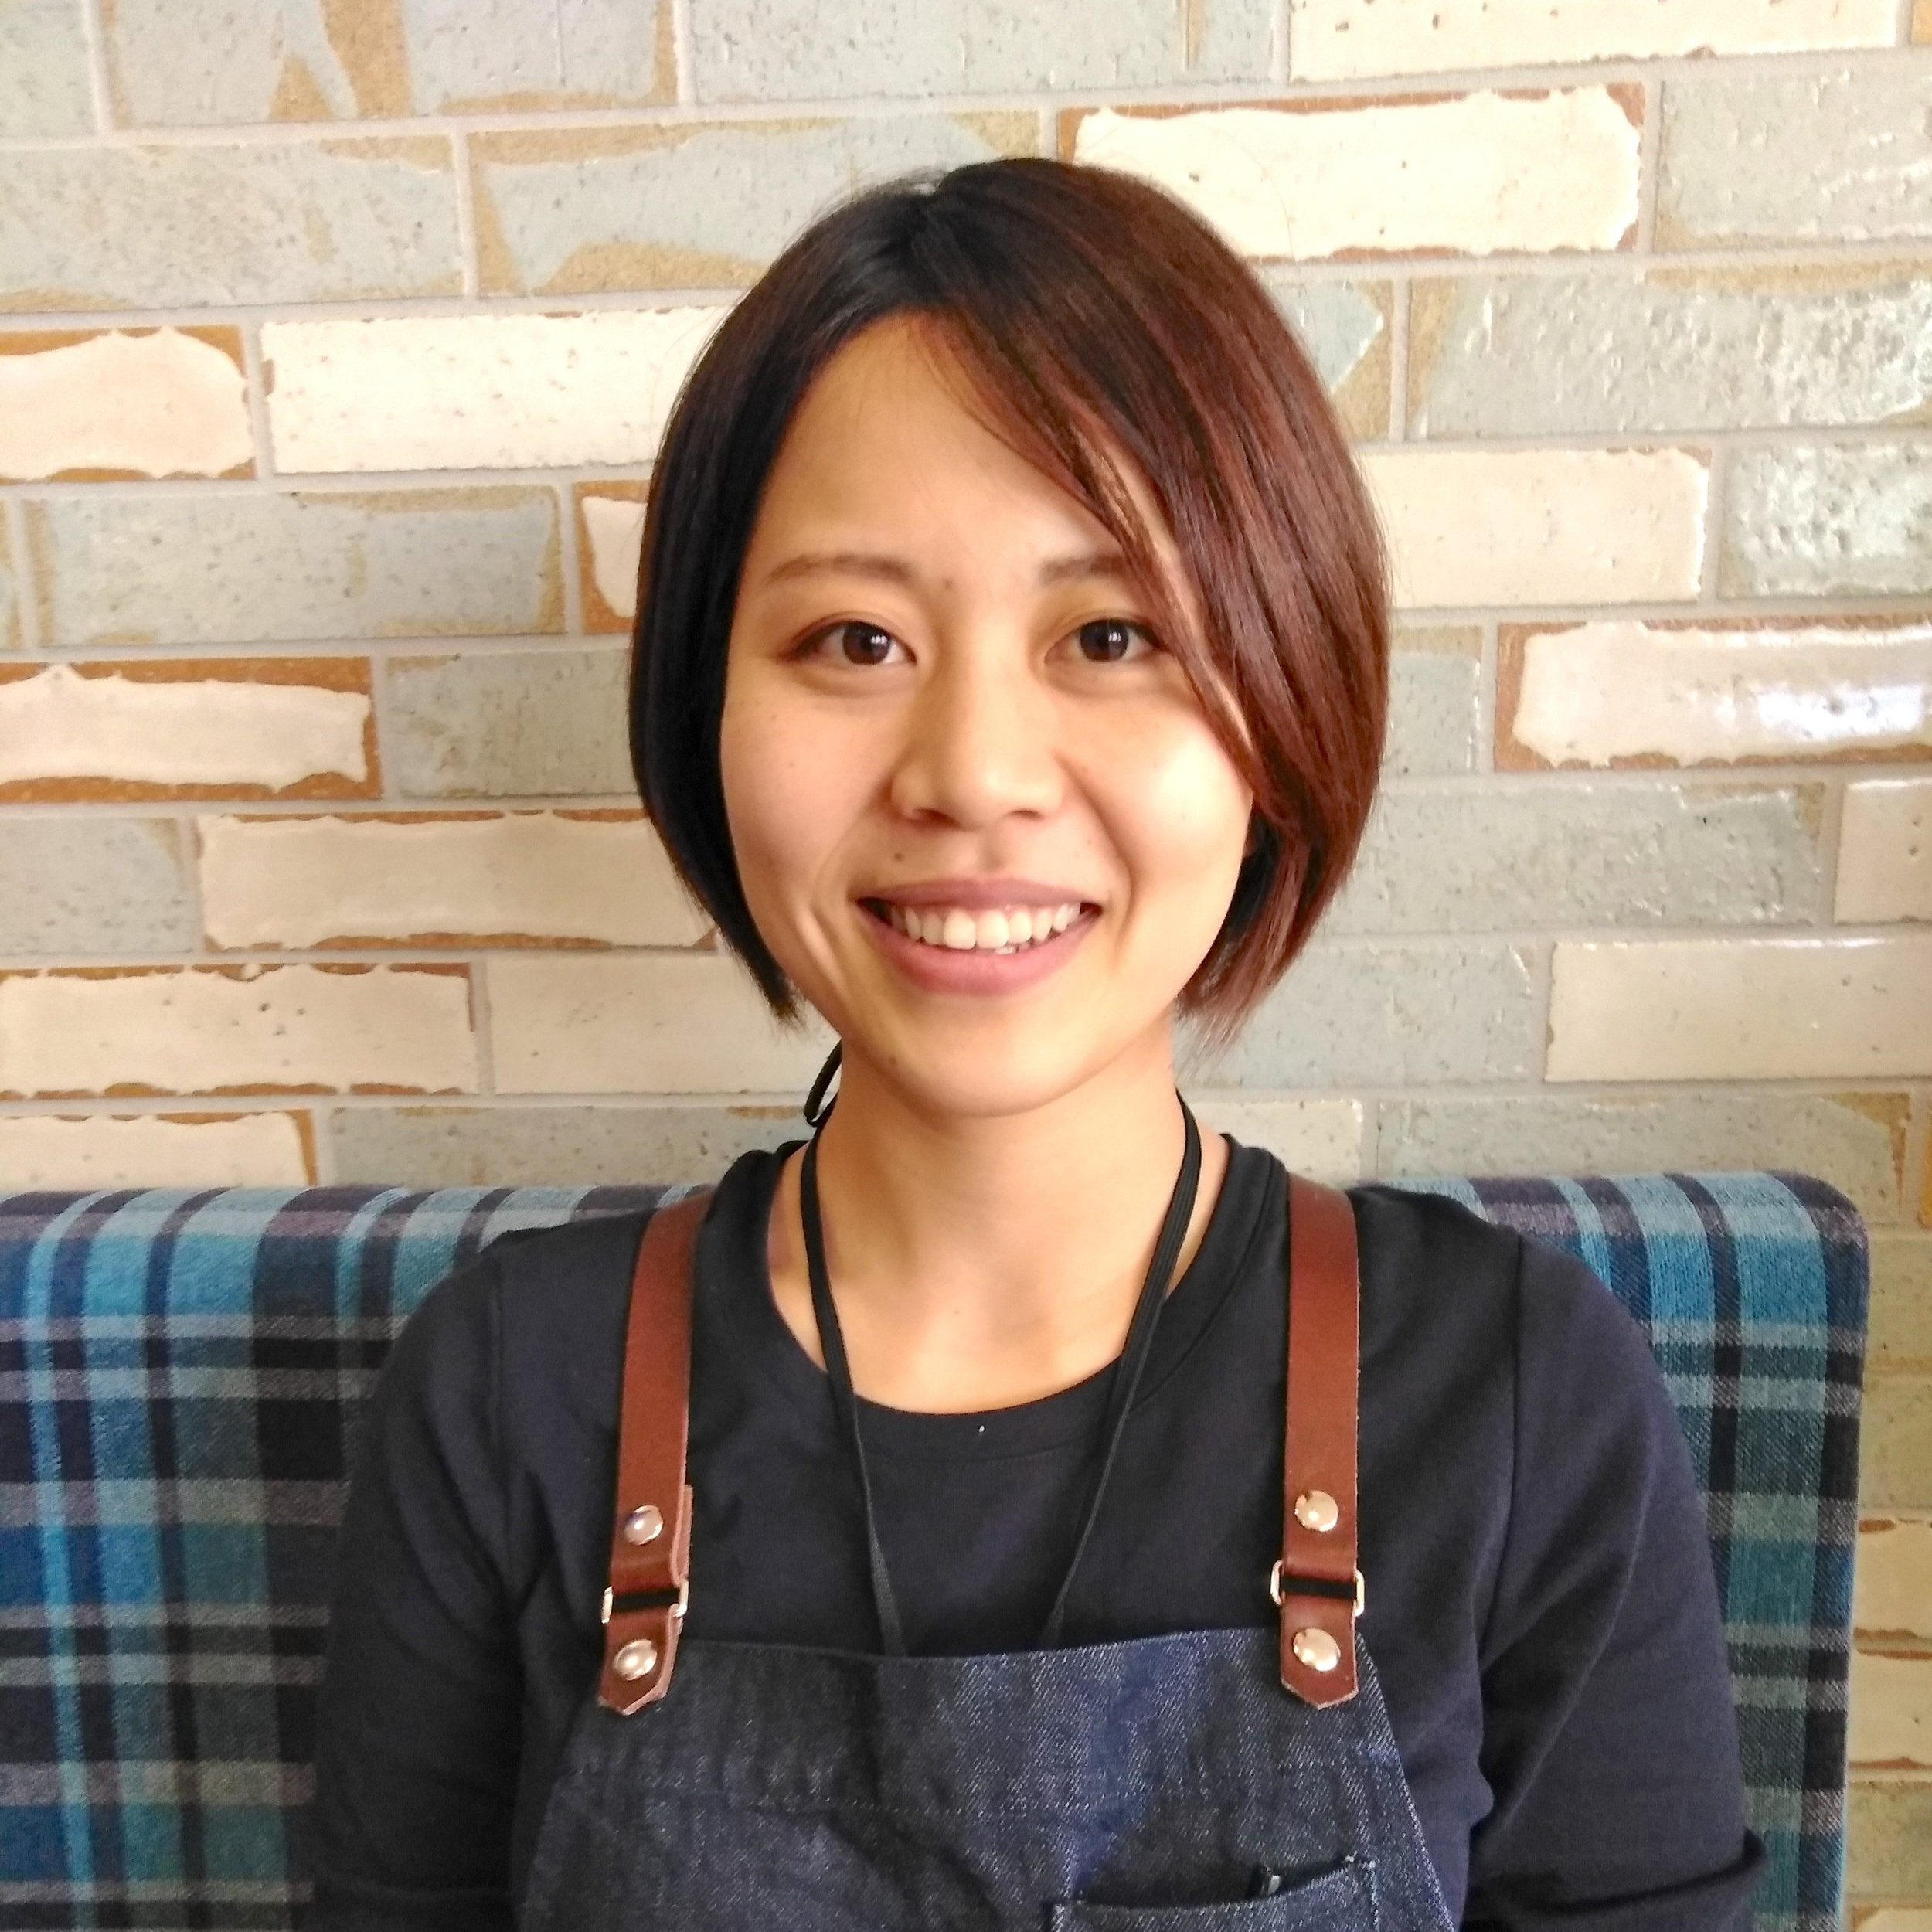 I look up to Kazuko Shimazaki, owner of Sunday Bake Shop in Tokyo. Her love and passion for food and creativity inspires me as a pastry chef. It's my dream to own a bakery shop like her. - Yukari, Barista & Pastry ChefTokyo, Japan